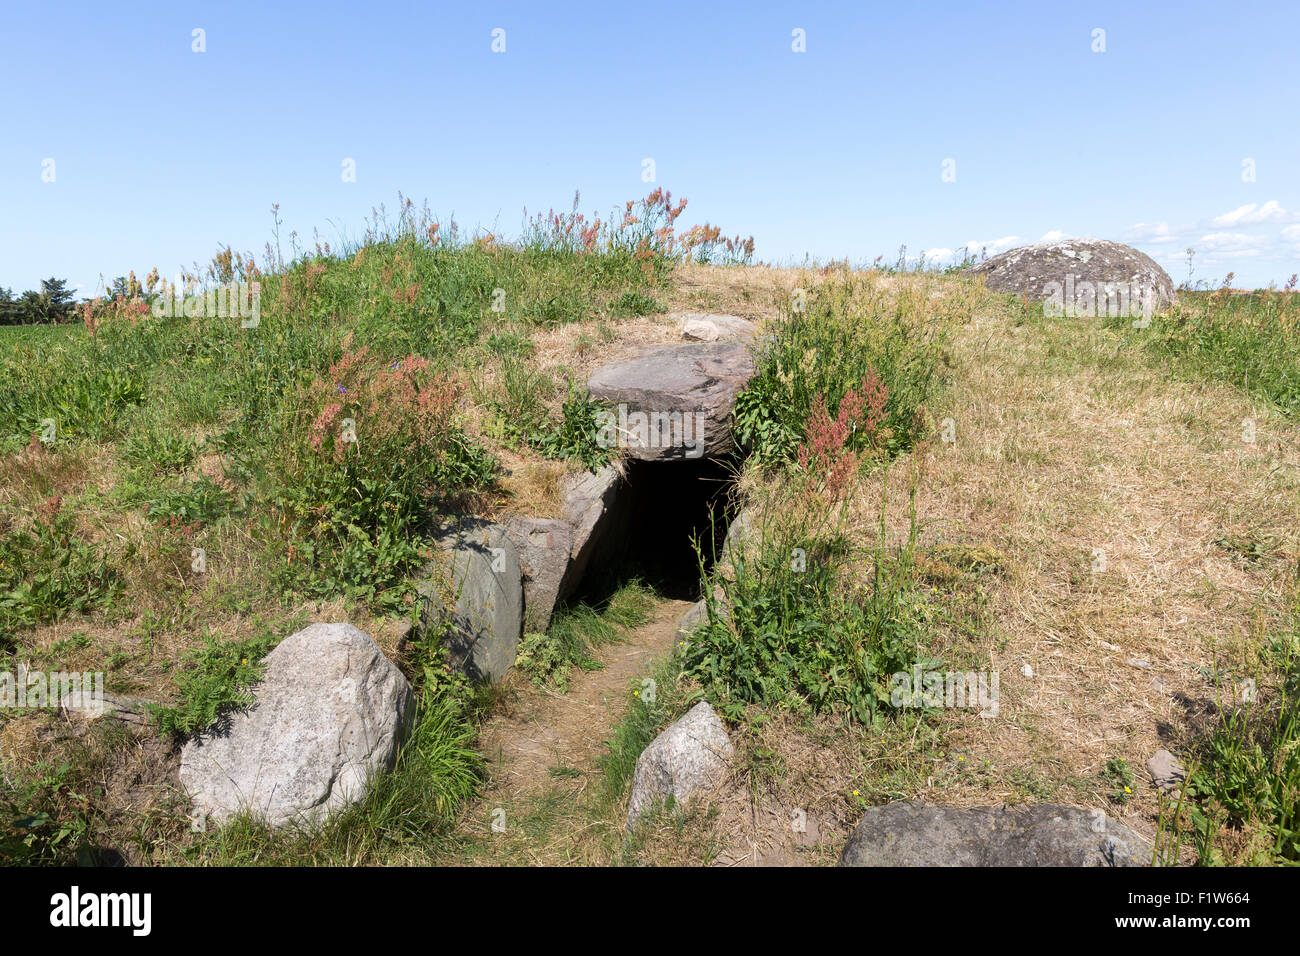 The entrance to the archaeological site of the Kragnaes Passage Cave on the island of Aero, Denmark. - Stock Image